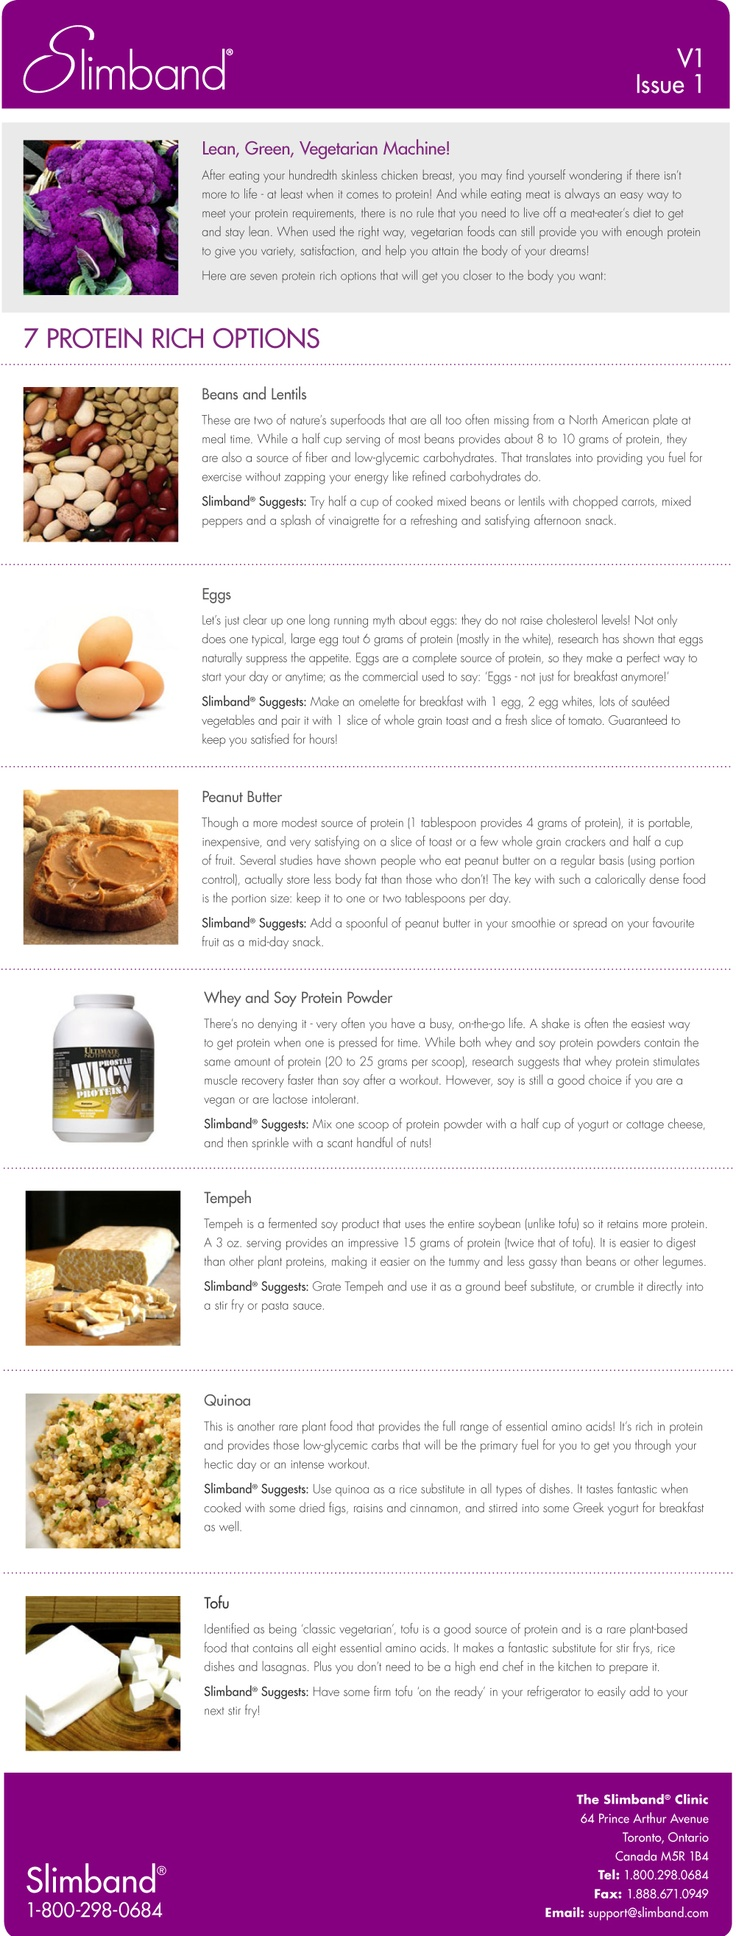 #Slimband 7 #Protein Rich Options - Get more  helpful #Slimband #Handouts at http://slimband.com/tools-and-resources